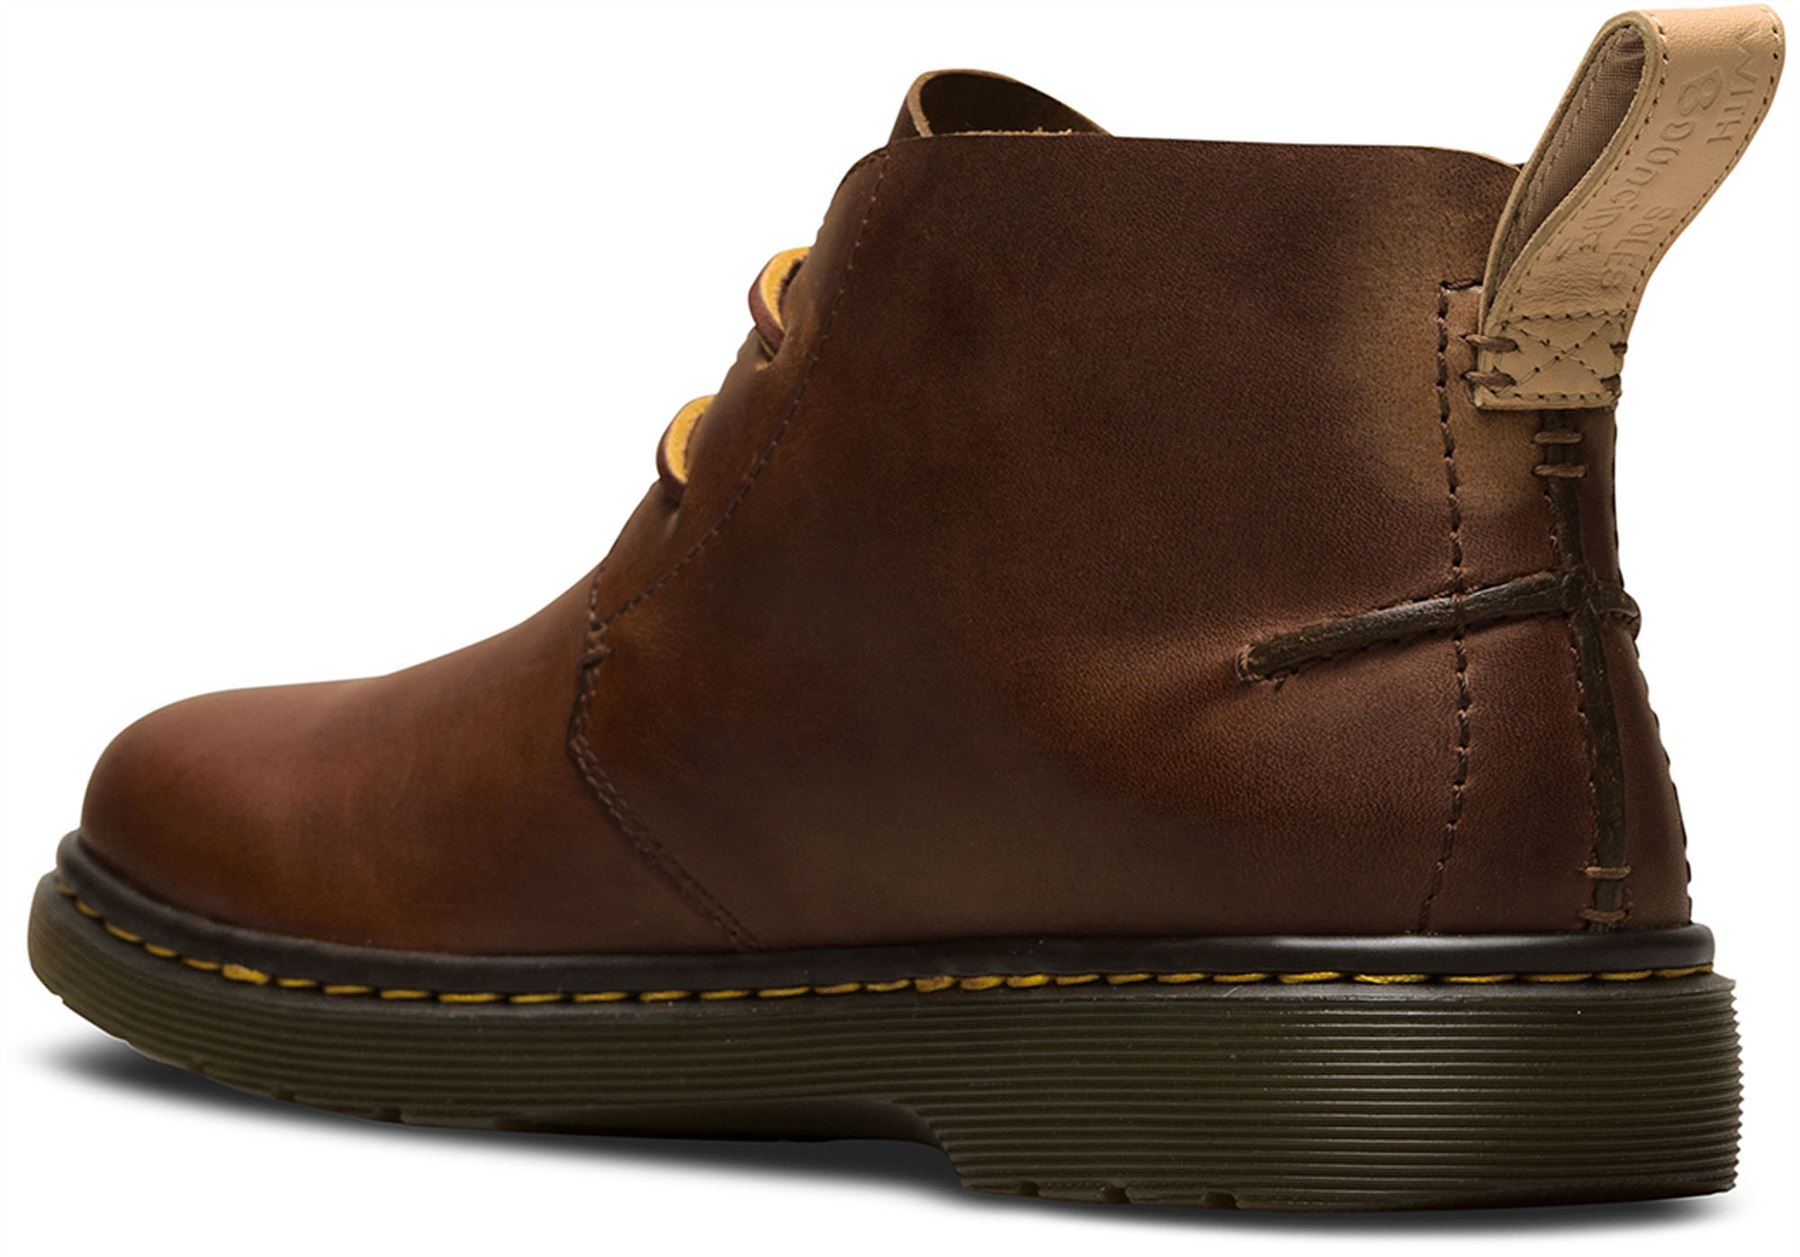 Dr Martens Mens Ember Tan Brown Westfield Premium Leather Desert ... 348896a0bb7a